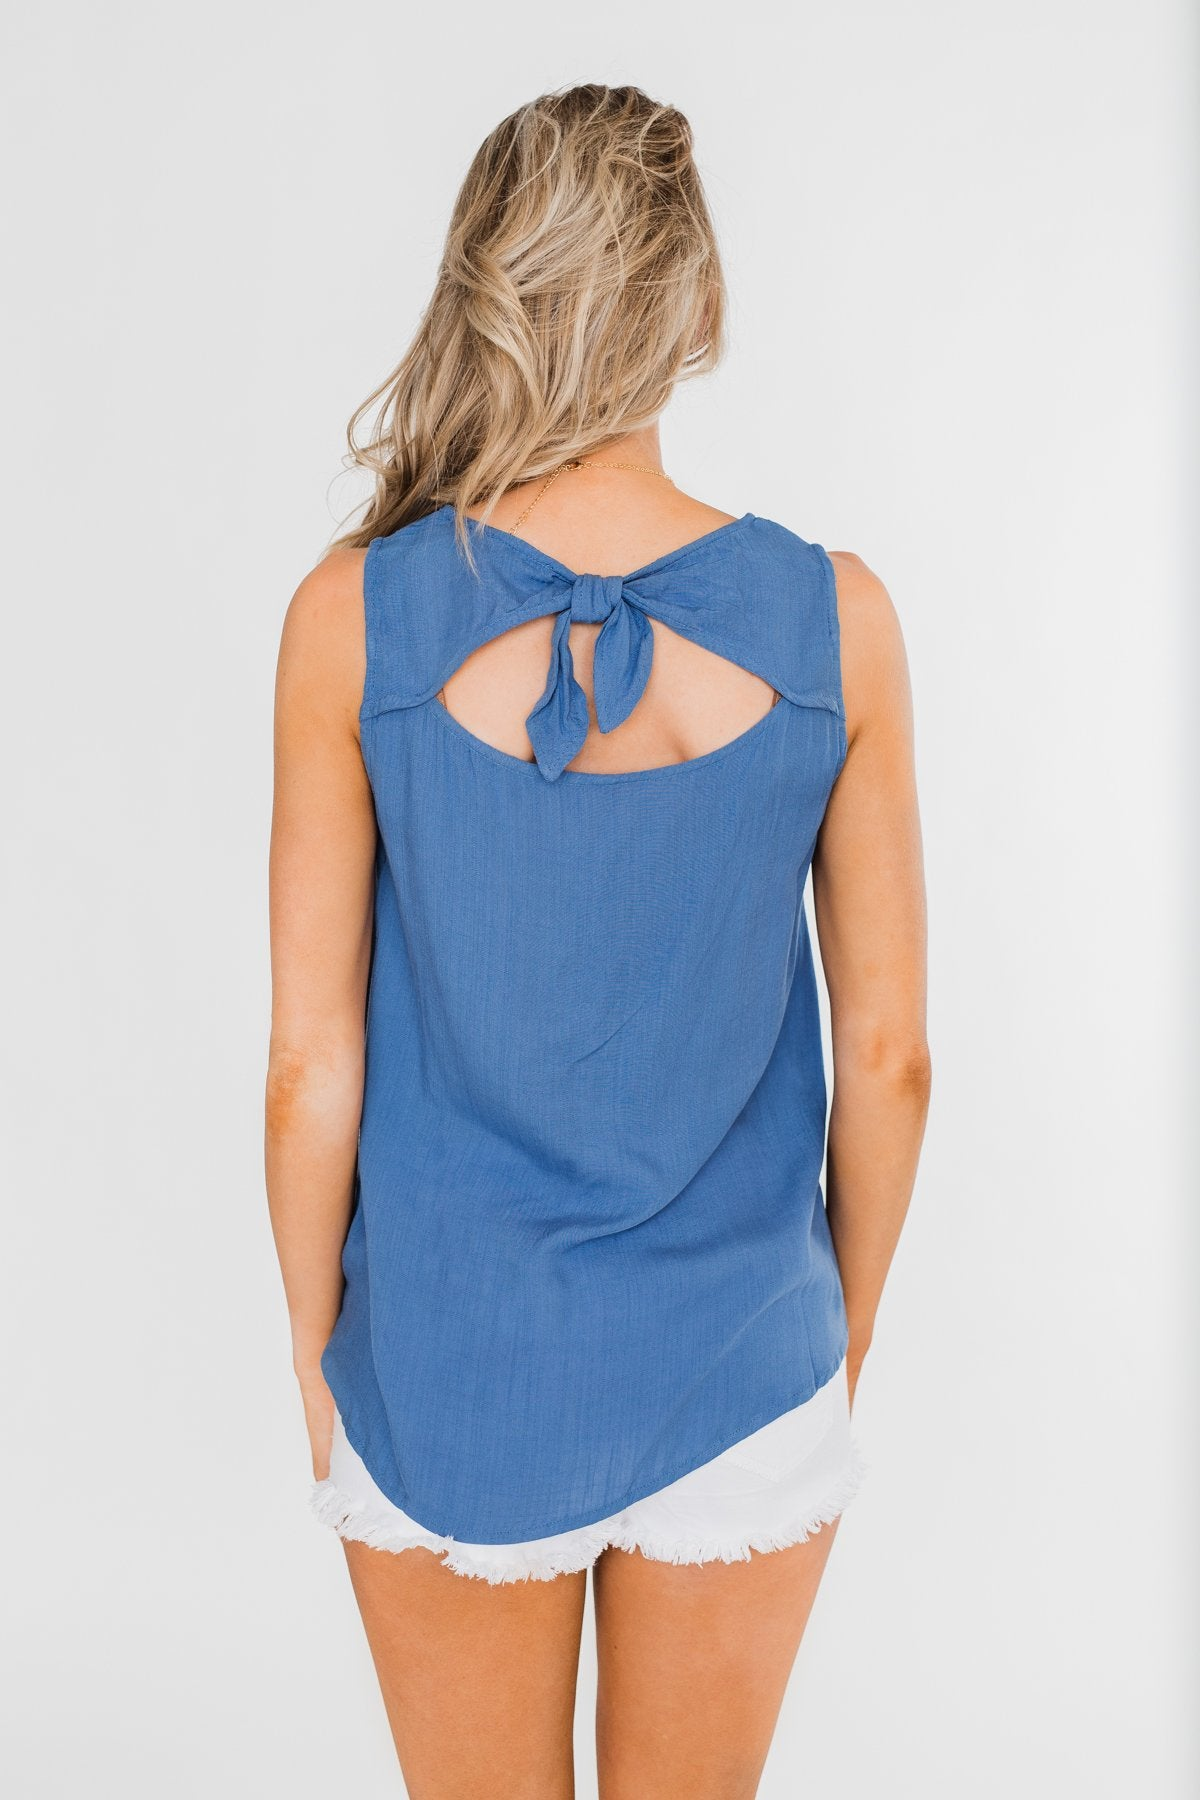 Take It From Me Tie Back Tank Top- Blue